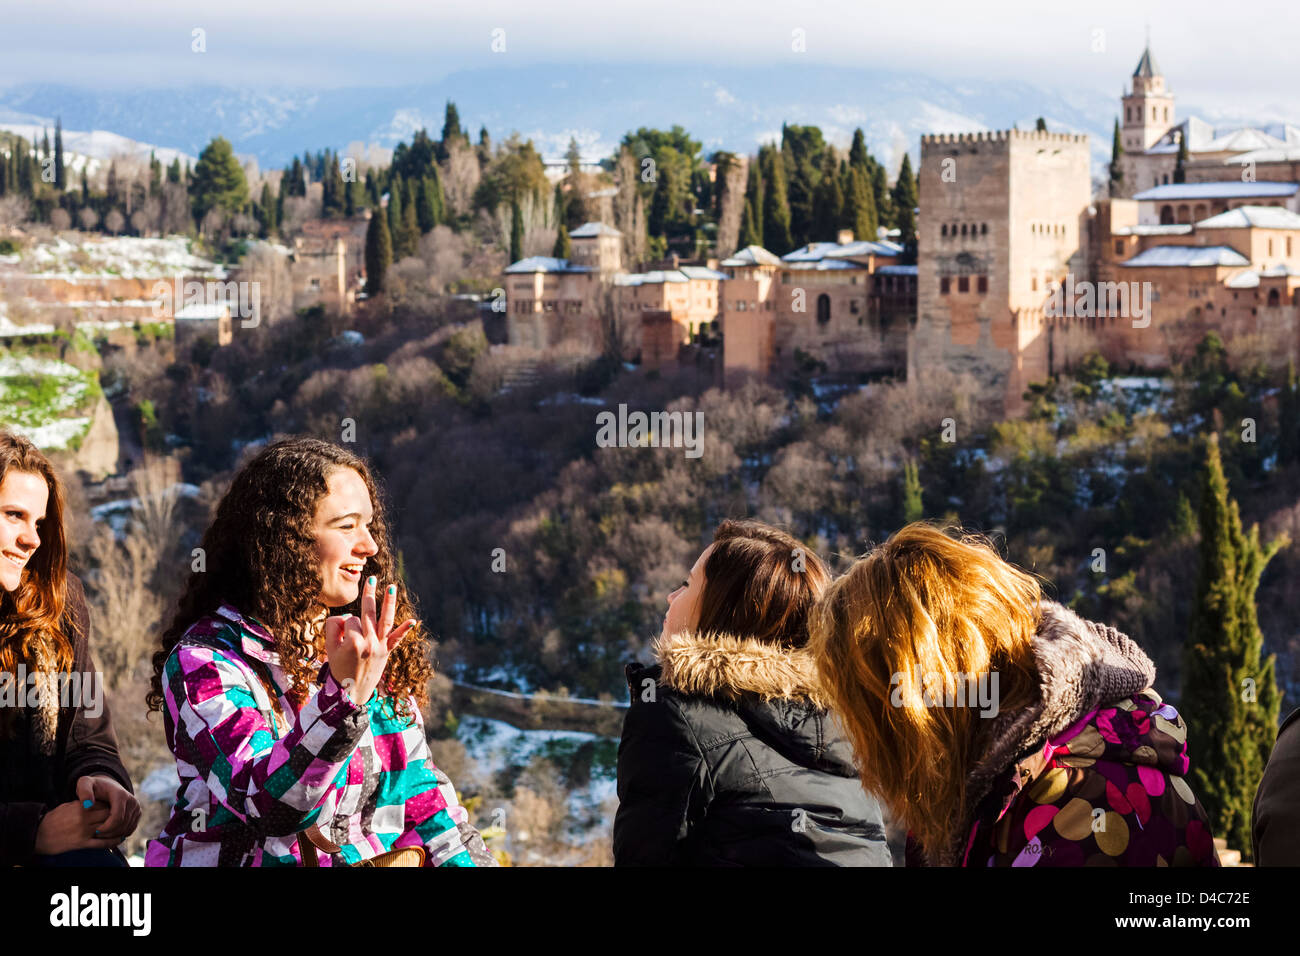 Cheerful teenager female tourists with snowy Alhambra palace in background. Granada, Spain - Stock Image